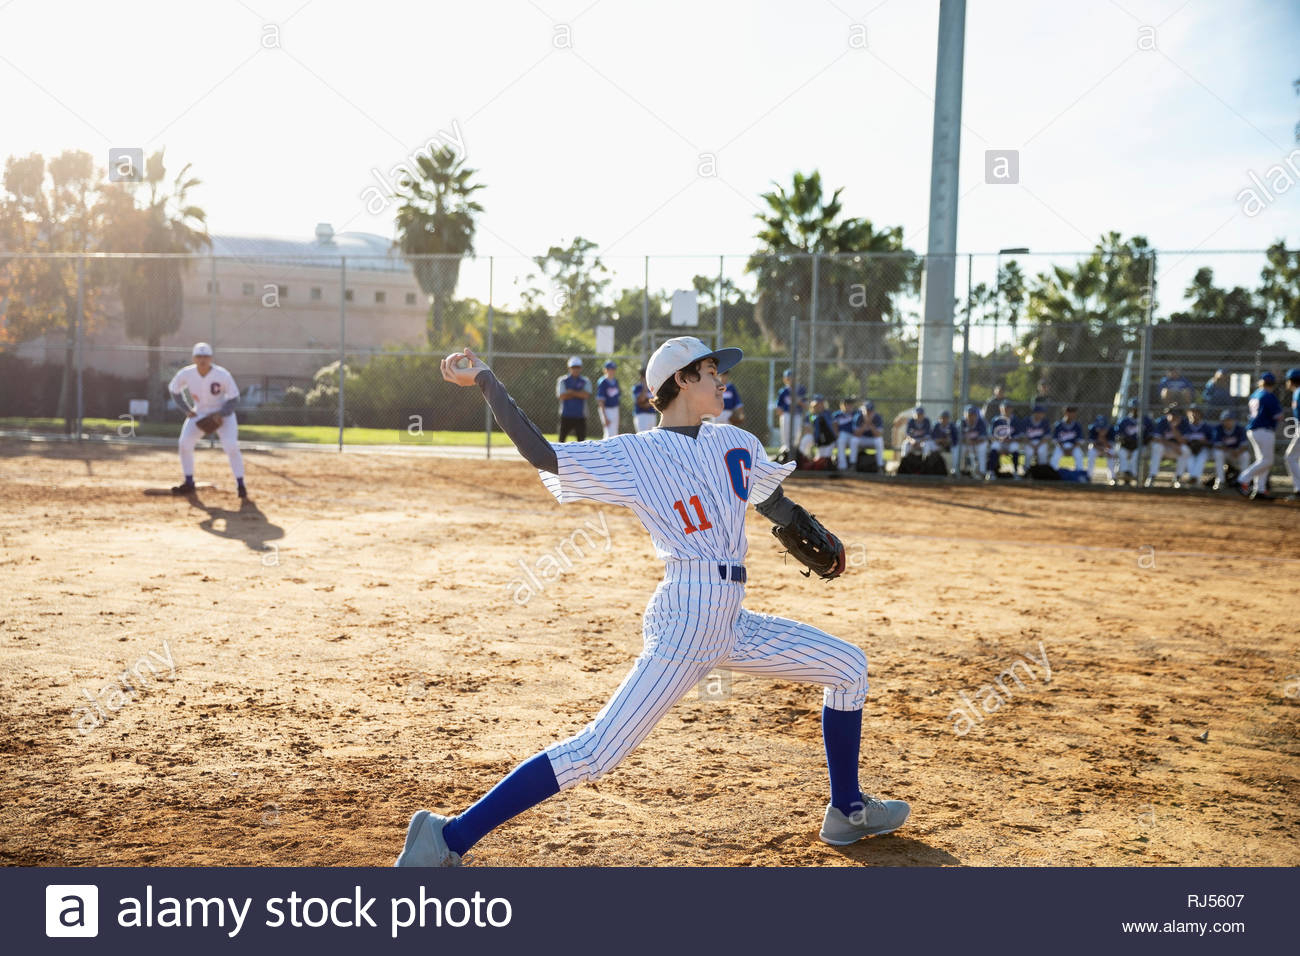 Baseball pitcher throwing the ball on sunny field - Stock Image